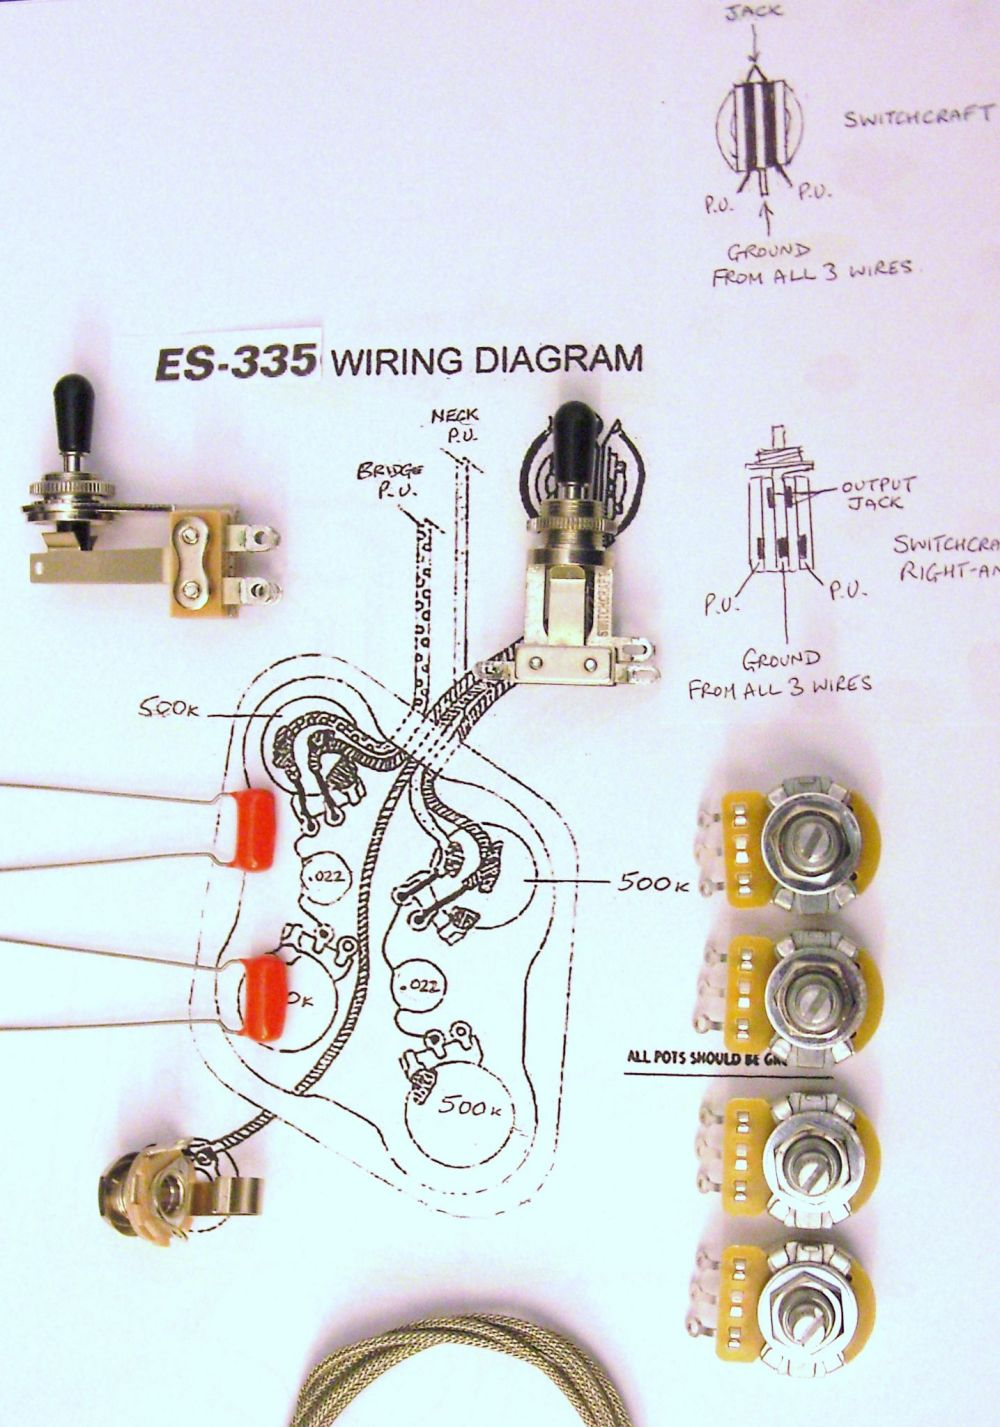 medium resolution of wiring kit for 335 with right angle switchcraft toggle switch wiring kit for 335 with right